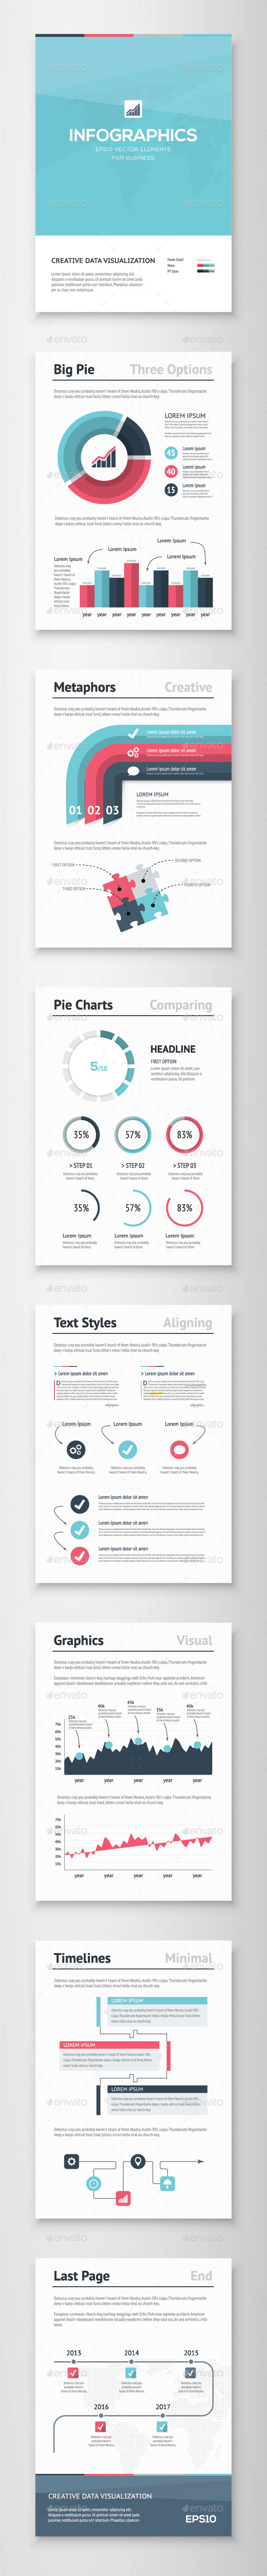 GraphicRiver Infographic Brochure Vector Elements Kit 5 10113424